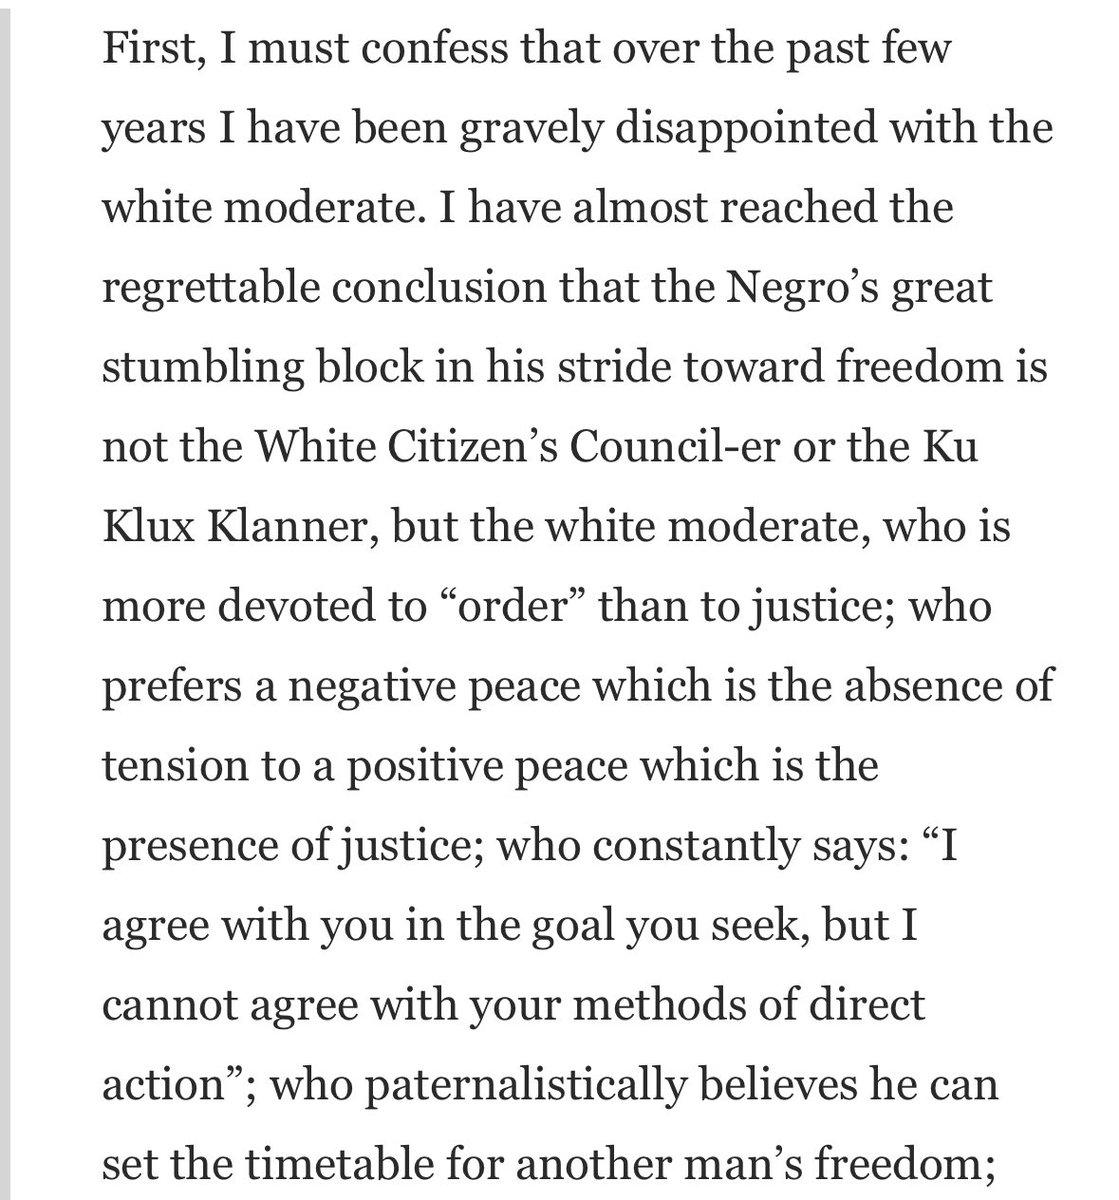 How about you listen to something beyond sound bites from Dr. King's I Have A Dream Speech. Because if you did, you'd know frustration with the white moderate is directly from King, who said: https://t.co/OYcG1nBgIJ https://t.co/TaqBCTQ7WA